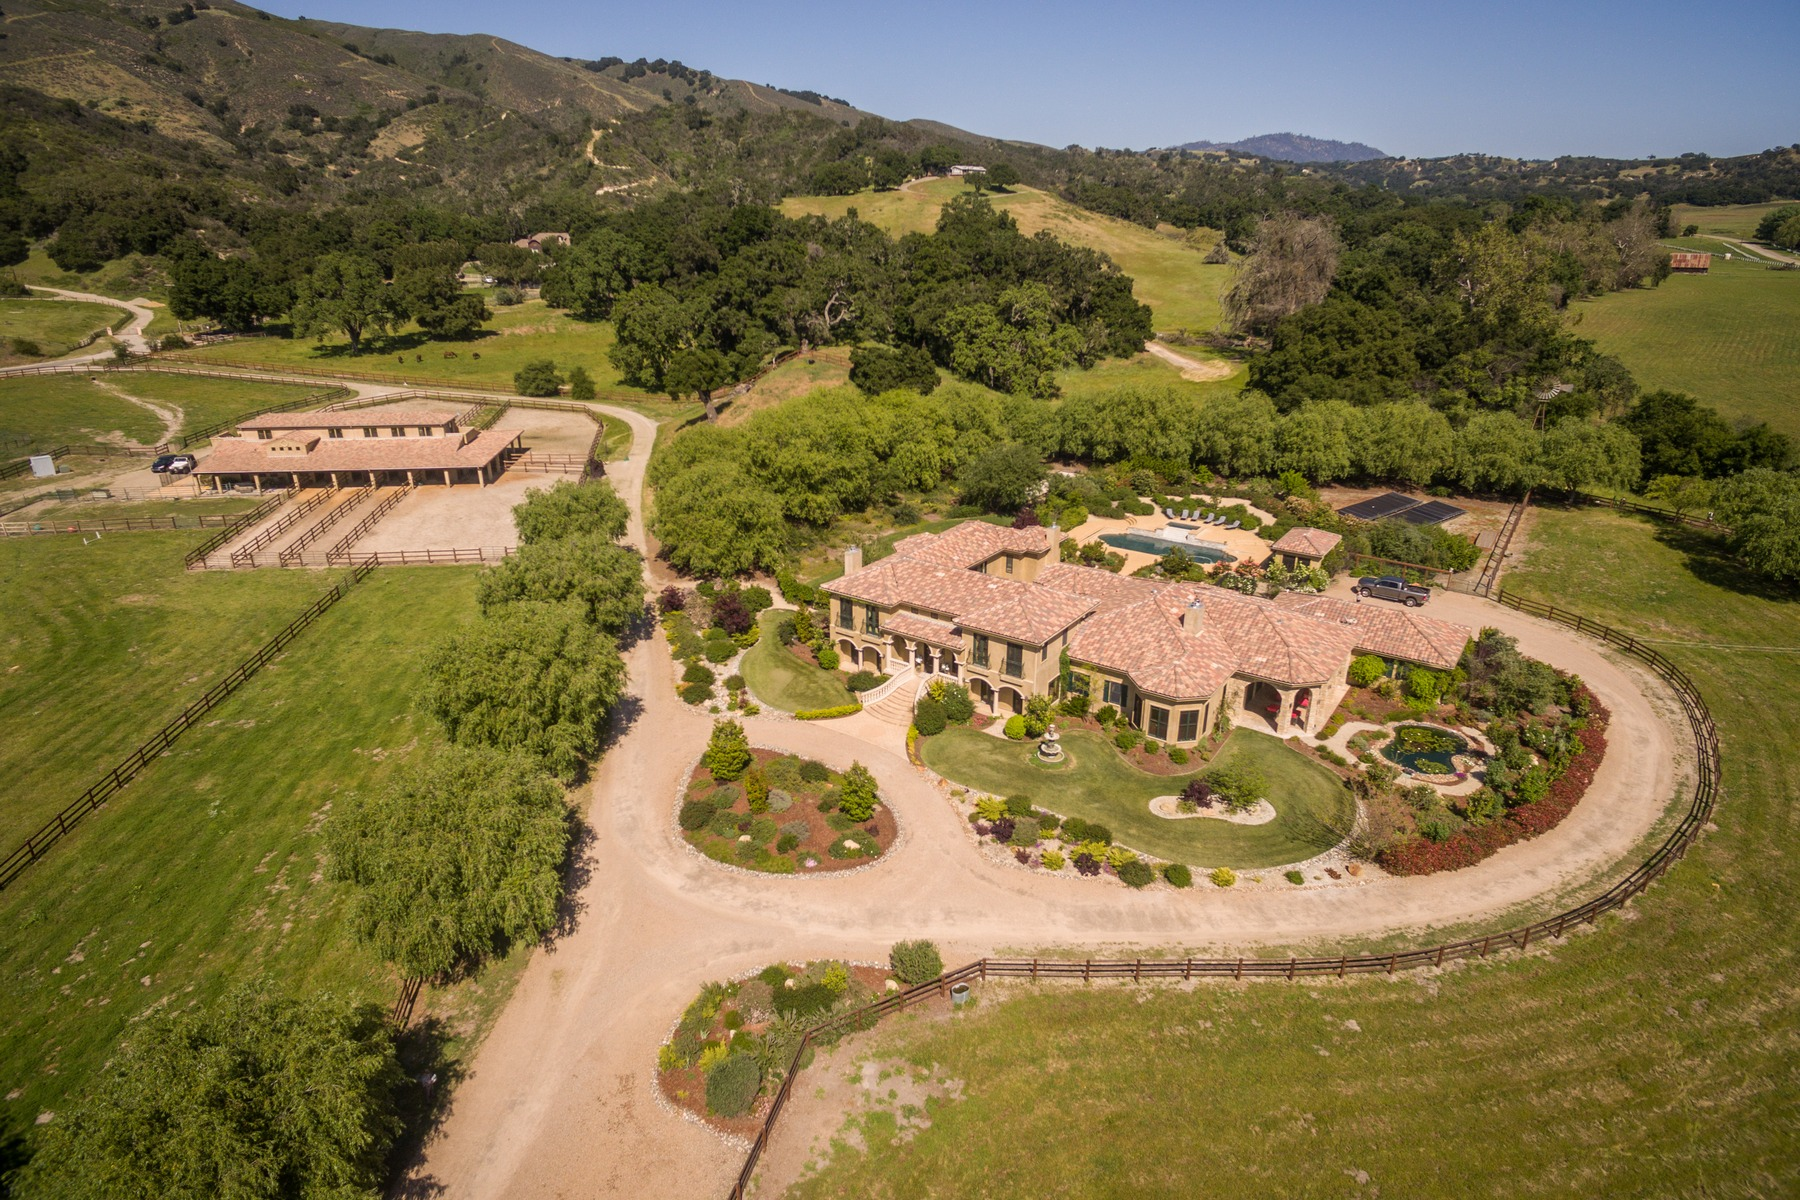 Single Family Home for Sale at Tuscan-Style Equestrian Estate 1494 Big Baldy Way Arroyo Grande, California, 93420 United States